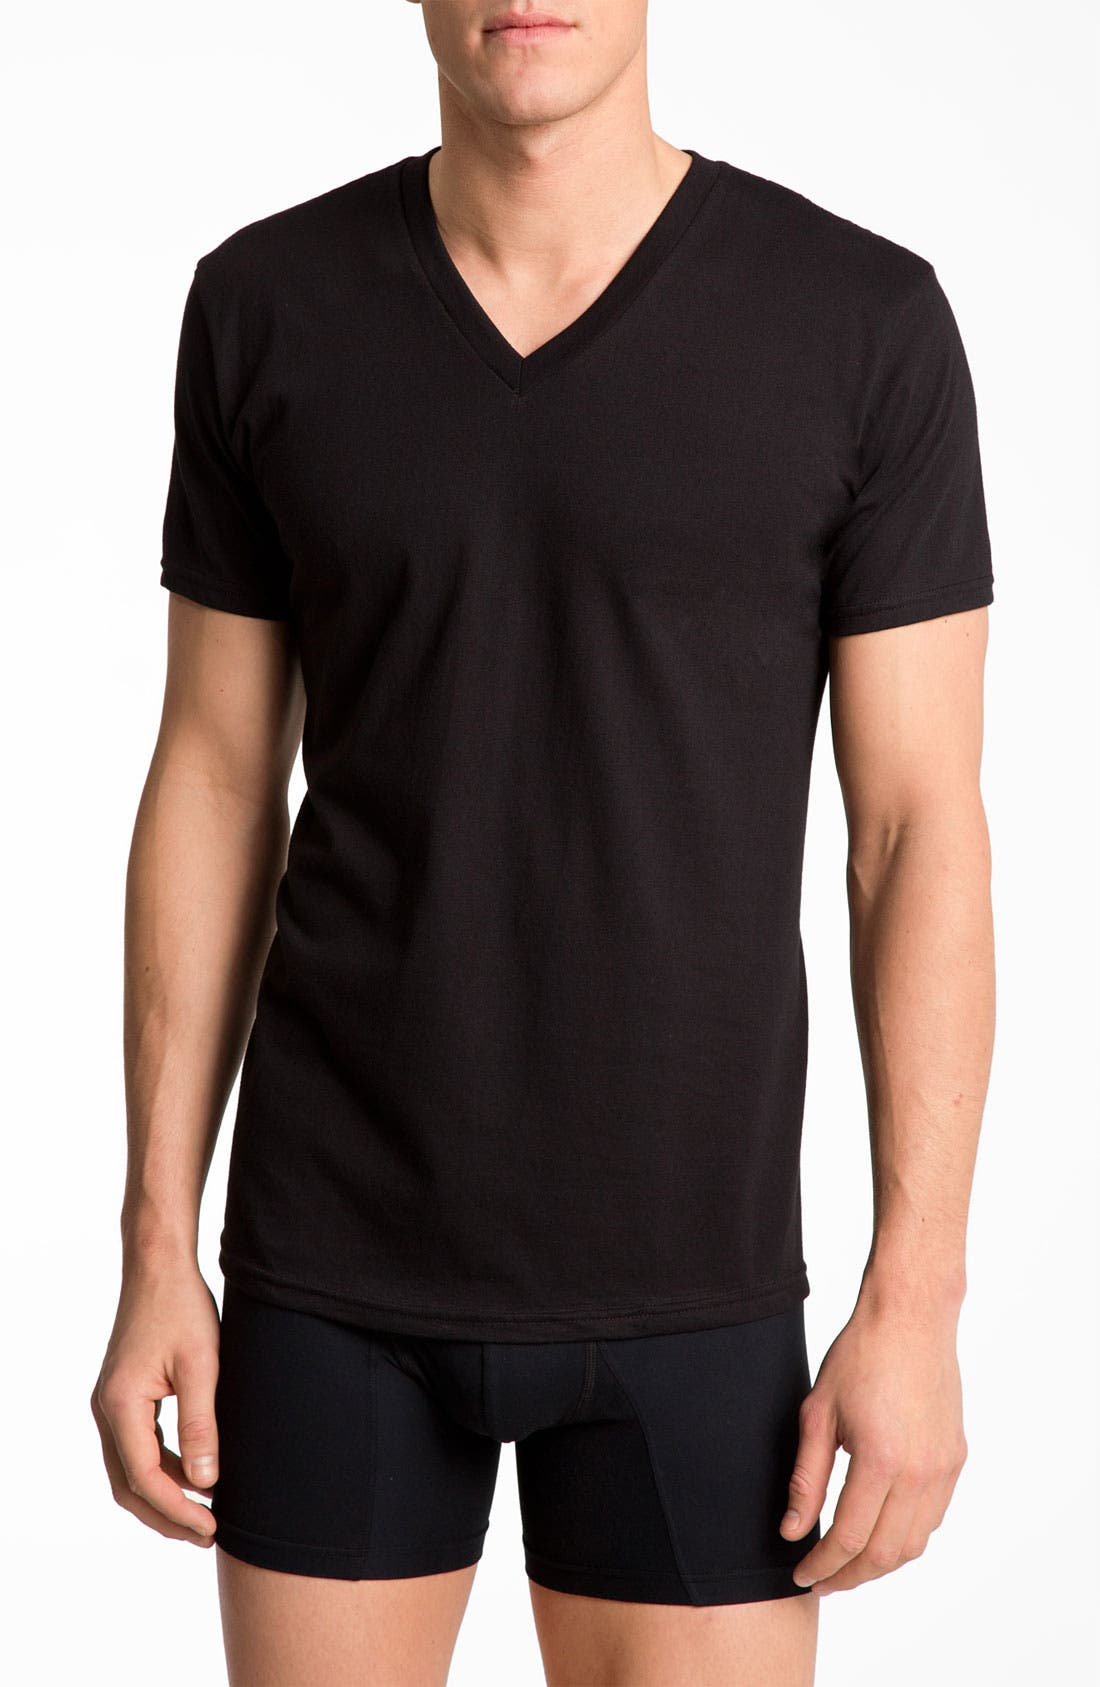 Alternate Image 1 Selected - Calvin Klein Basic V-Neck T-Shirt (2-Pack) (Tall)